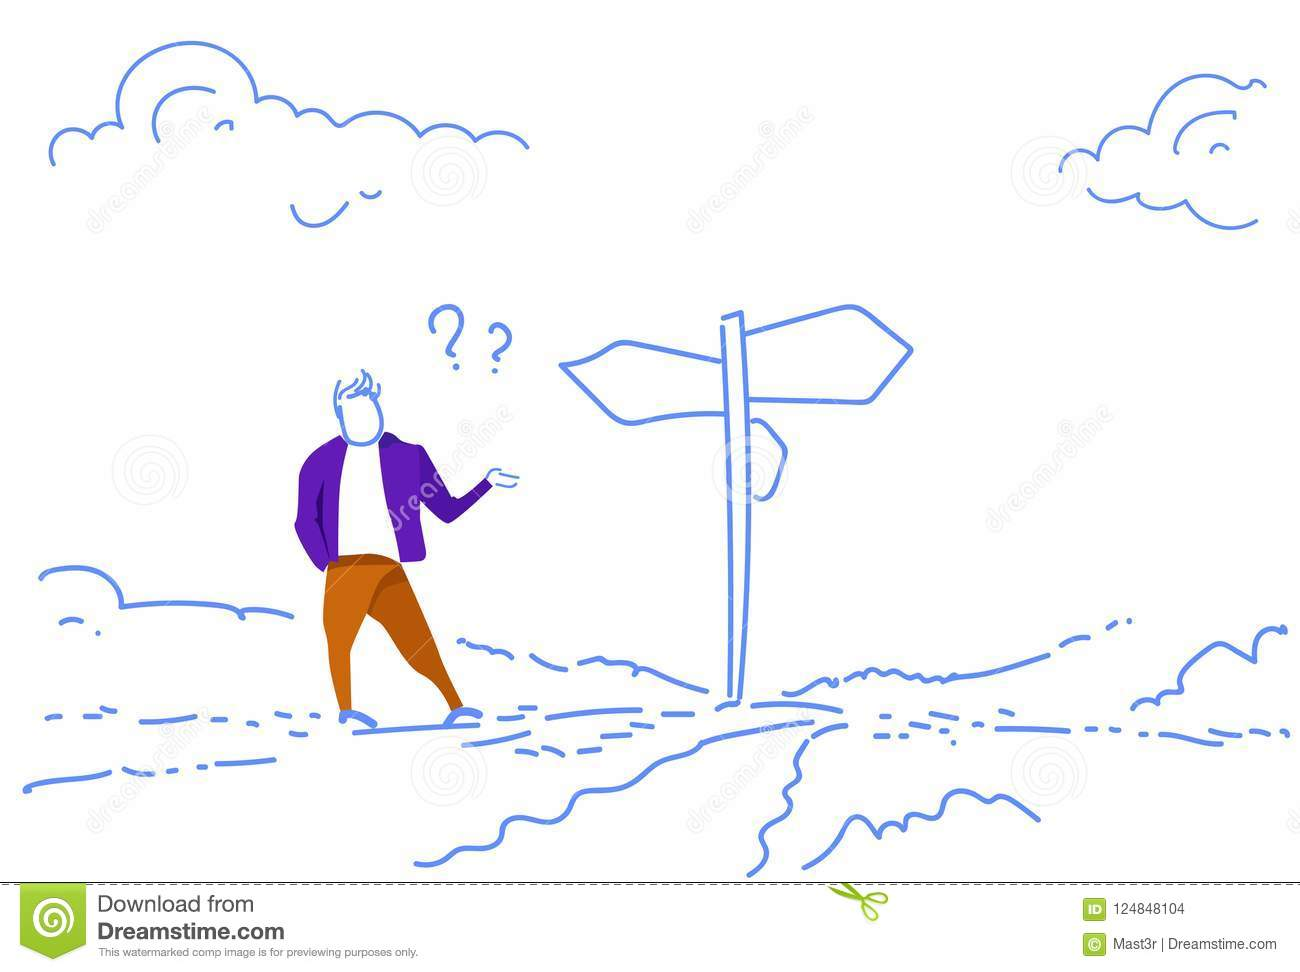 Confused businessman standing road sign choose direction way signboard arrow question marks sketch doodle horizontal